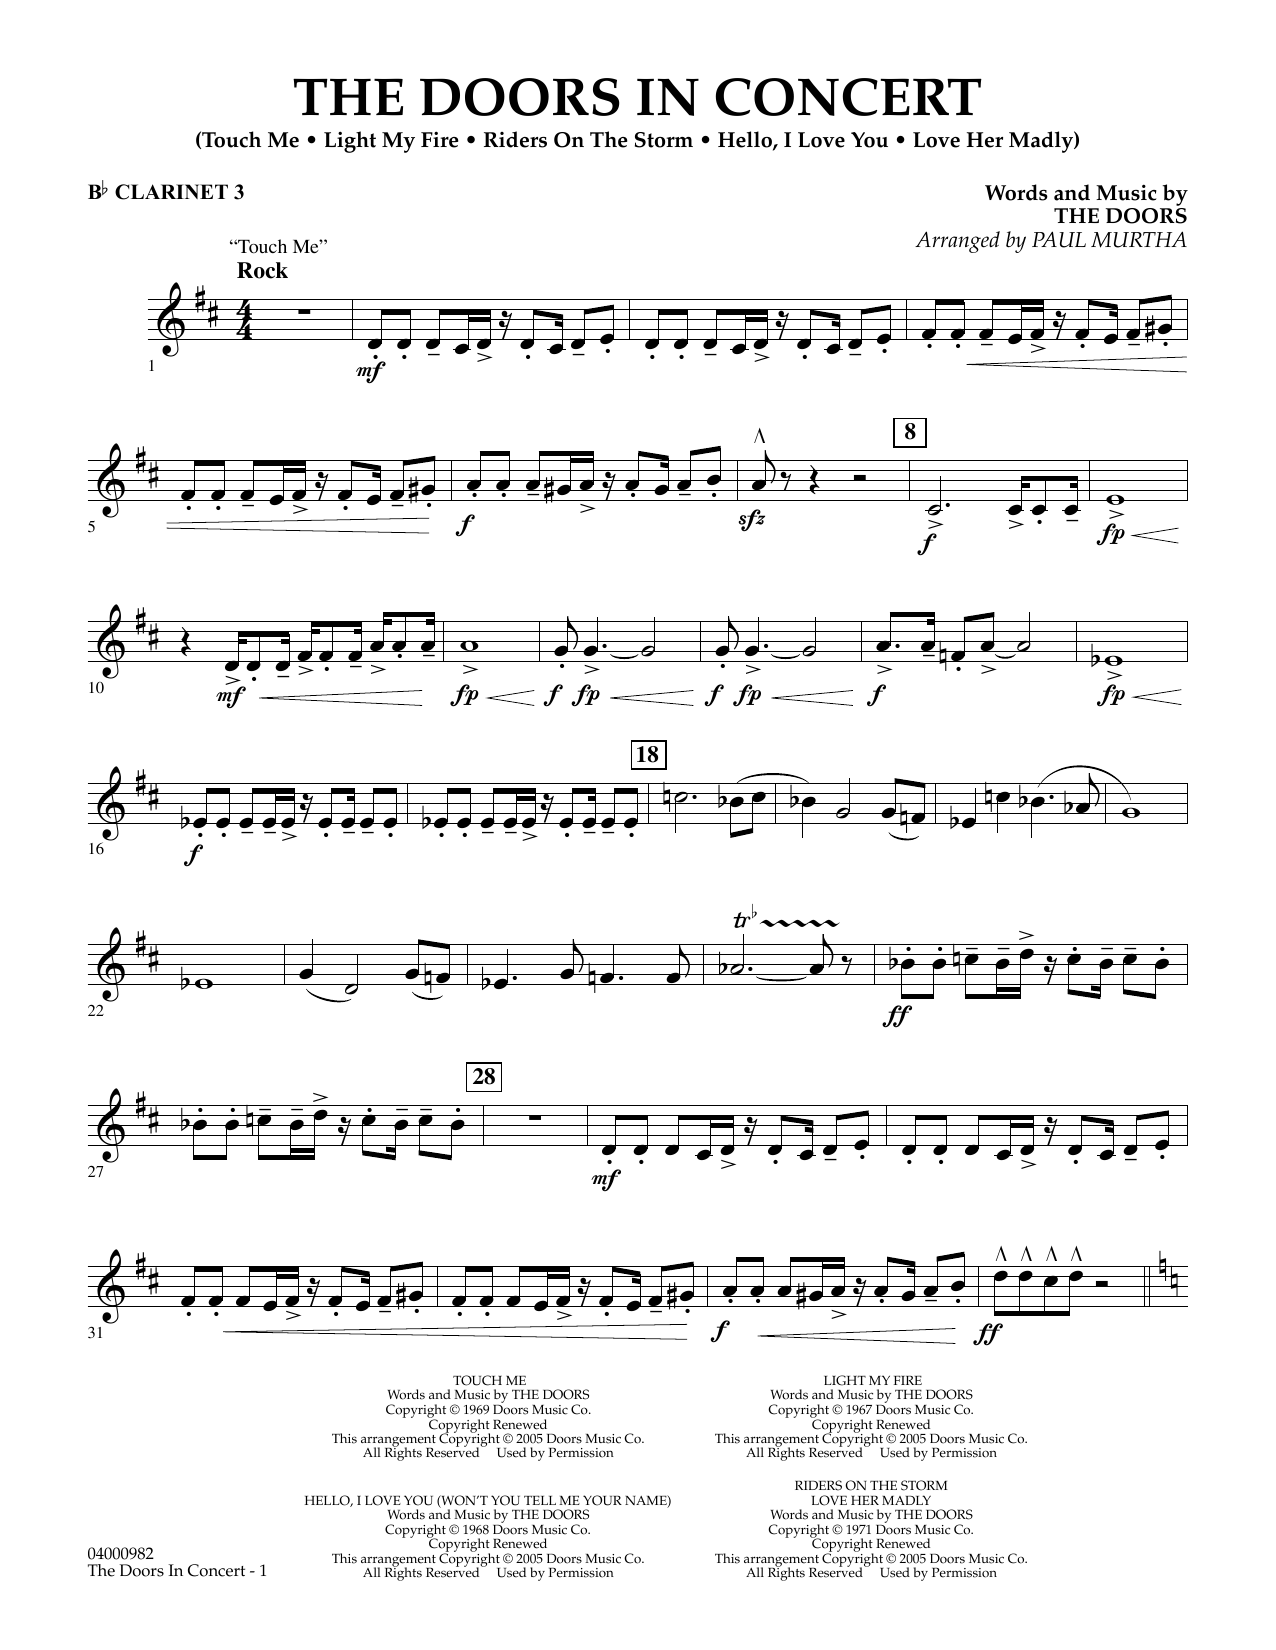 The Doors The Doors in Concert (arr. Paul Murtha) - Bb Clarinet 3 sheet music notes and chords. Download Printable PDF.